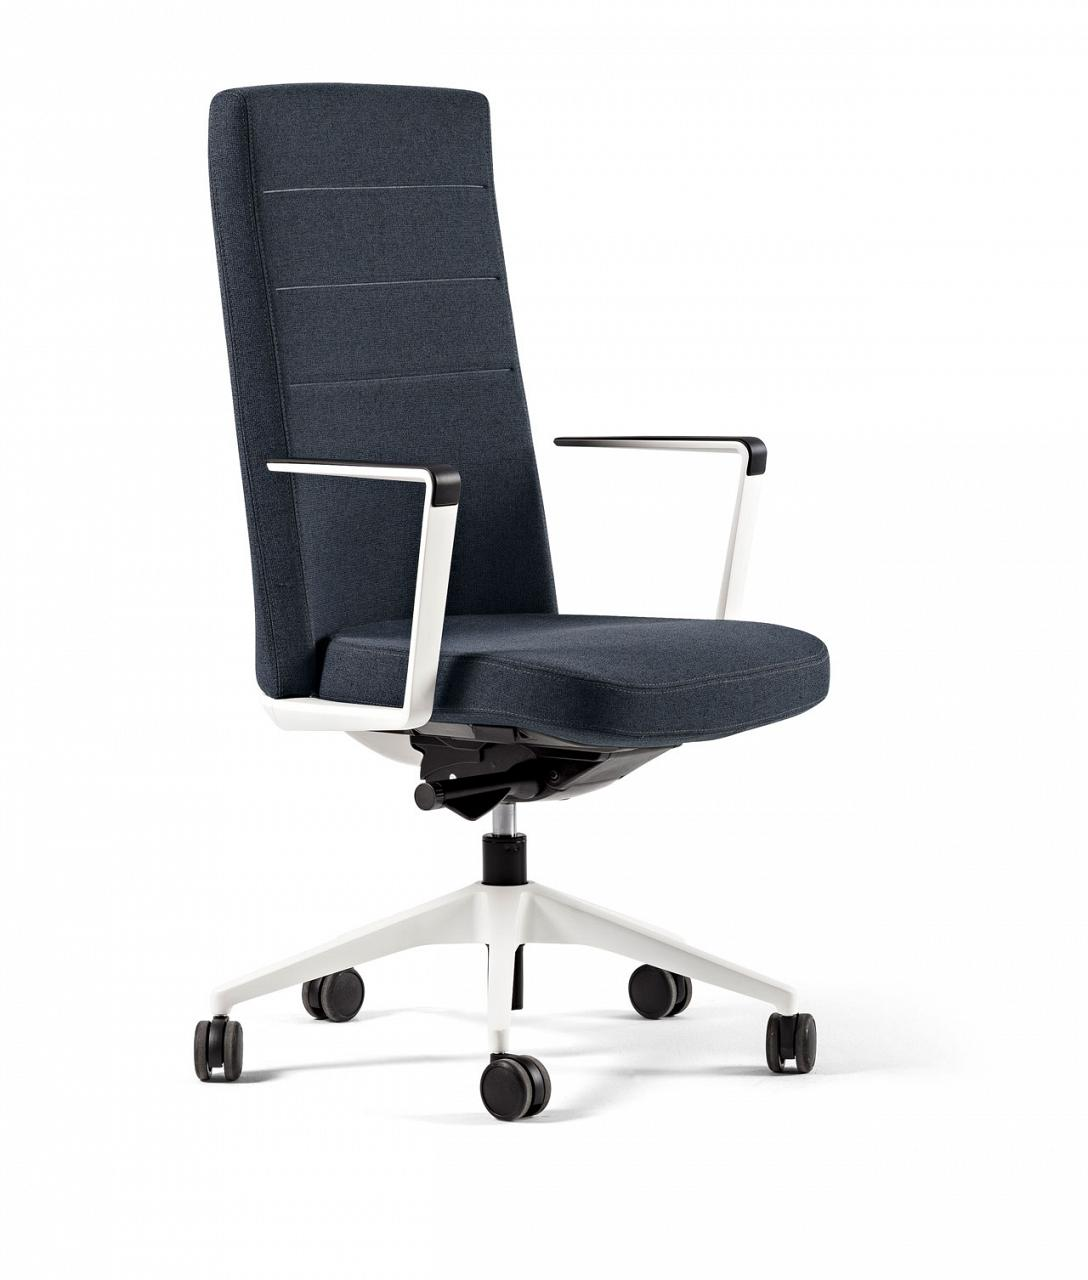 cron modern executive chair with all features